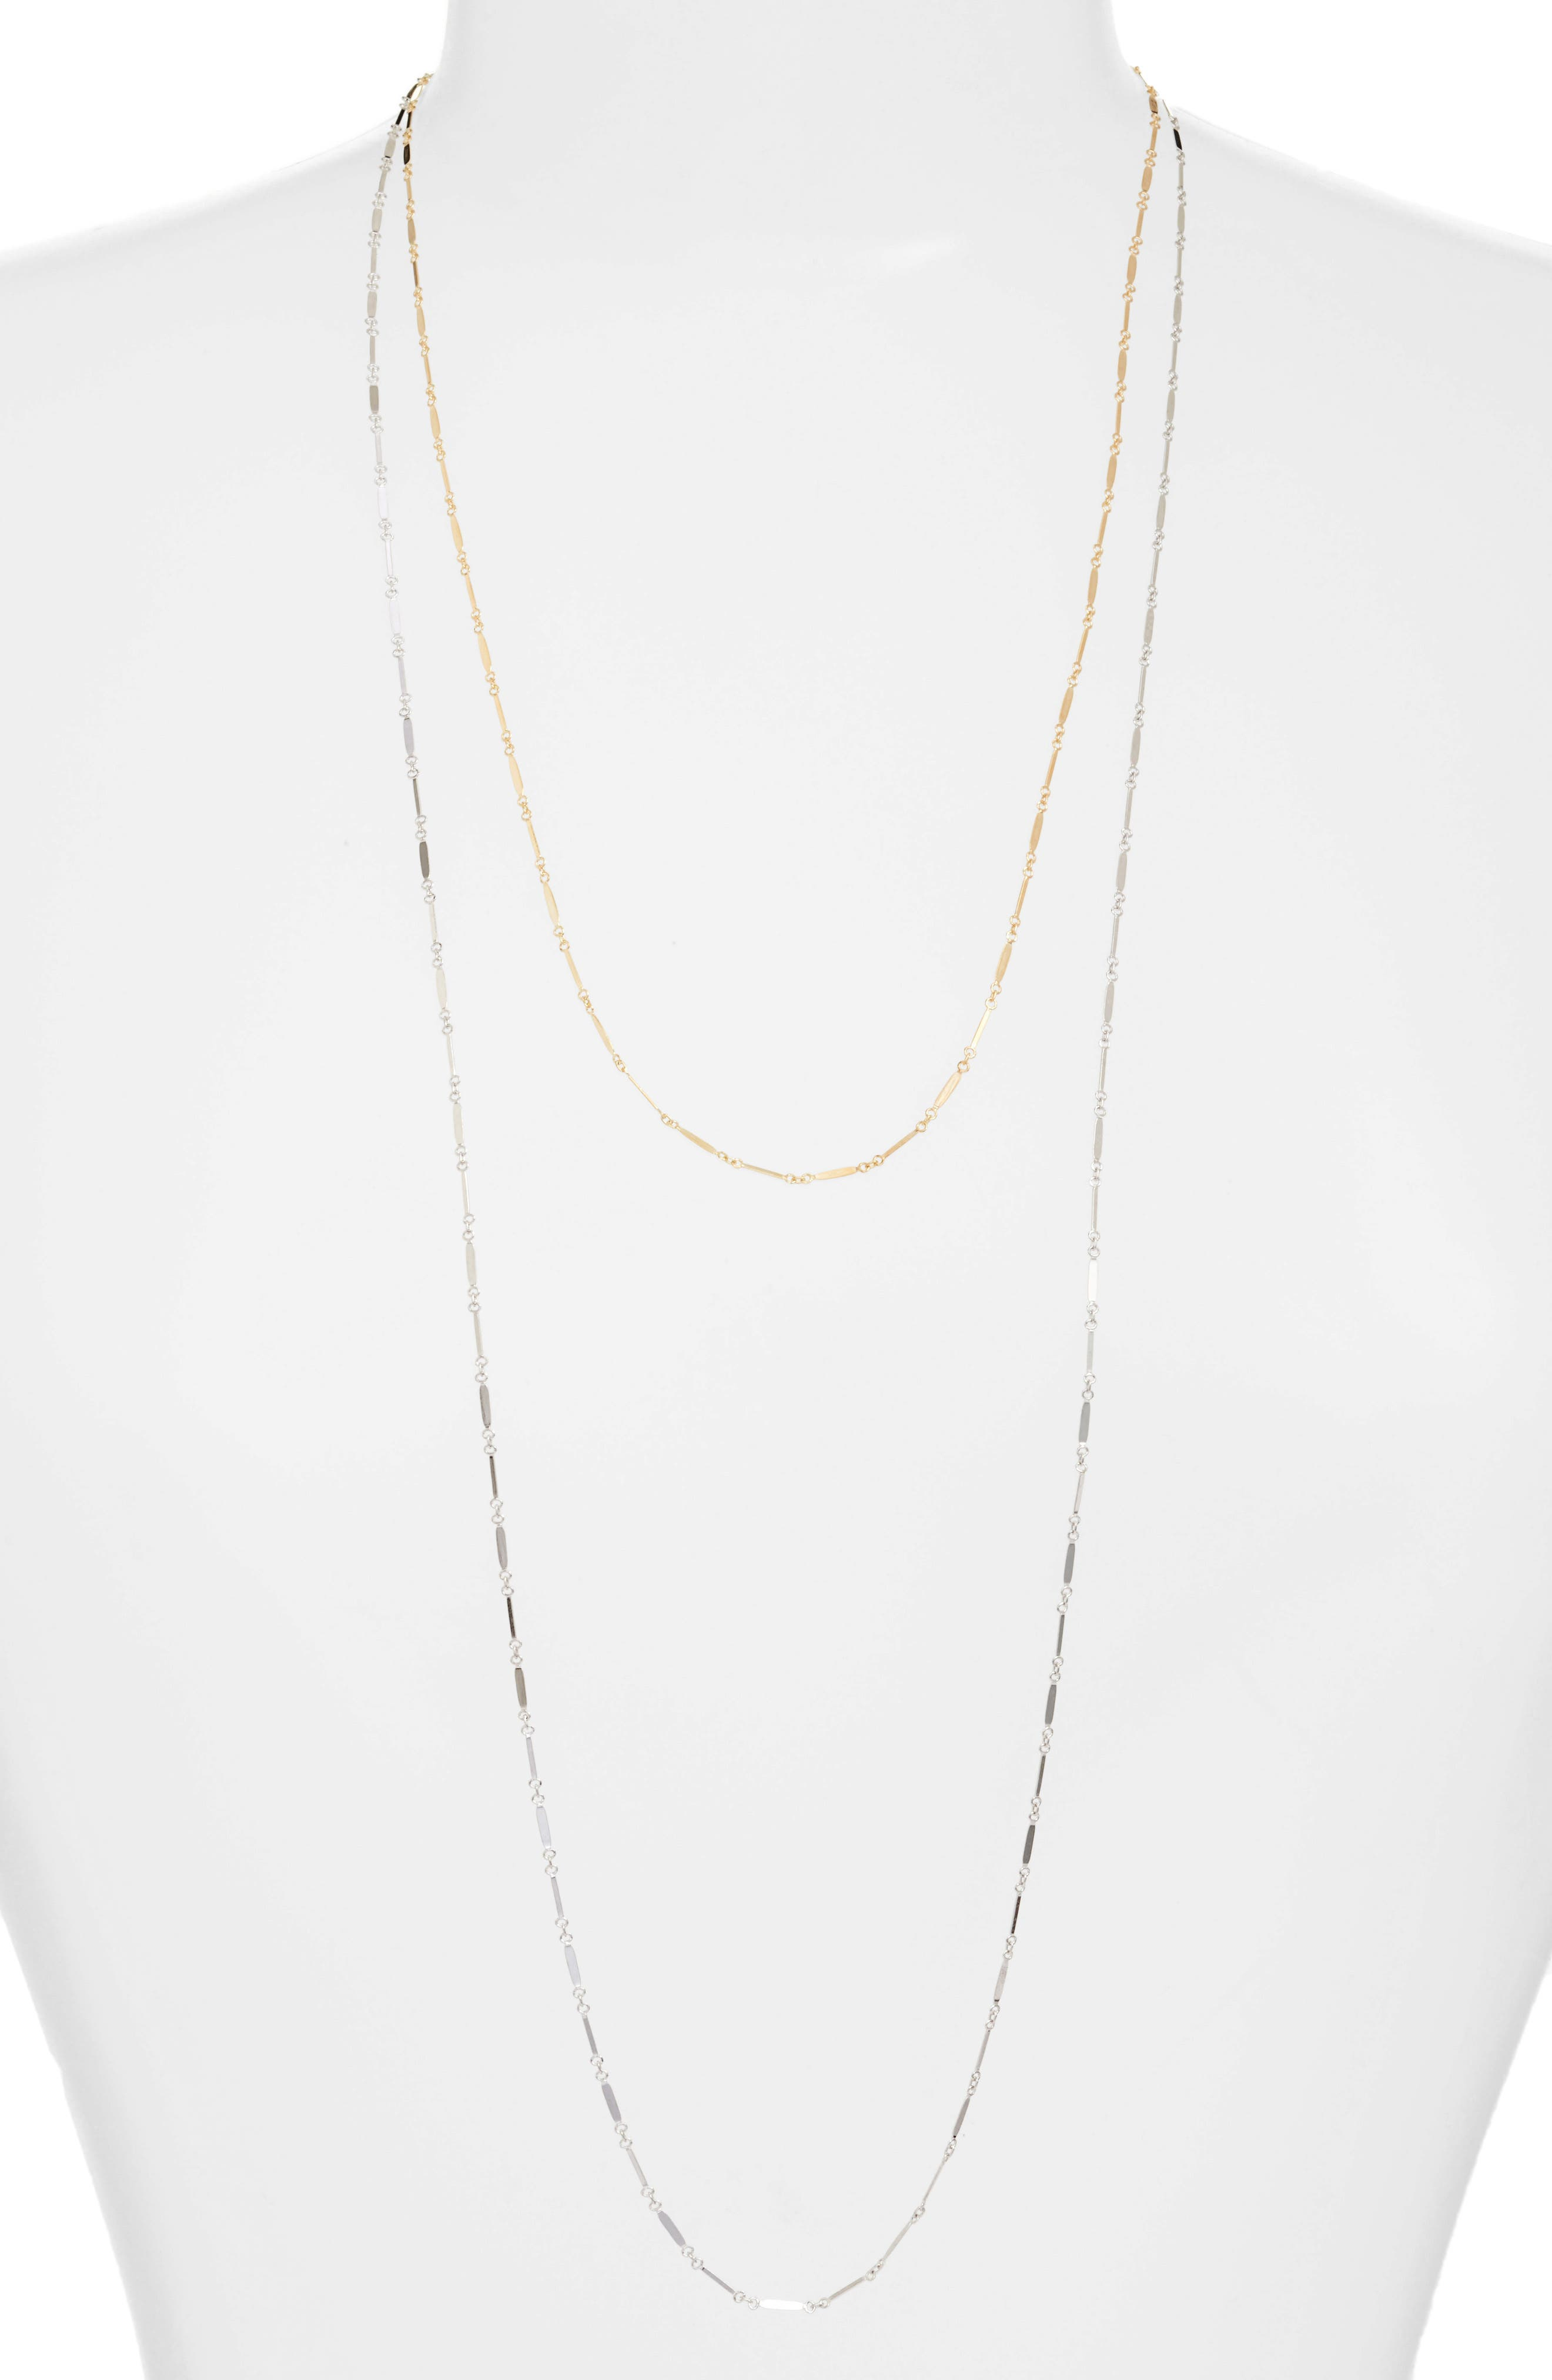 Two-Tone Mirror Multistrand Necklace,                             Main thumbnail 1, color,                             GOLD/ SILVER